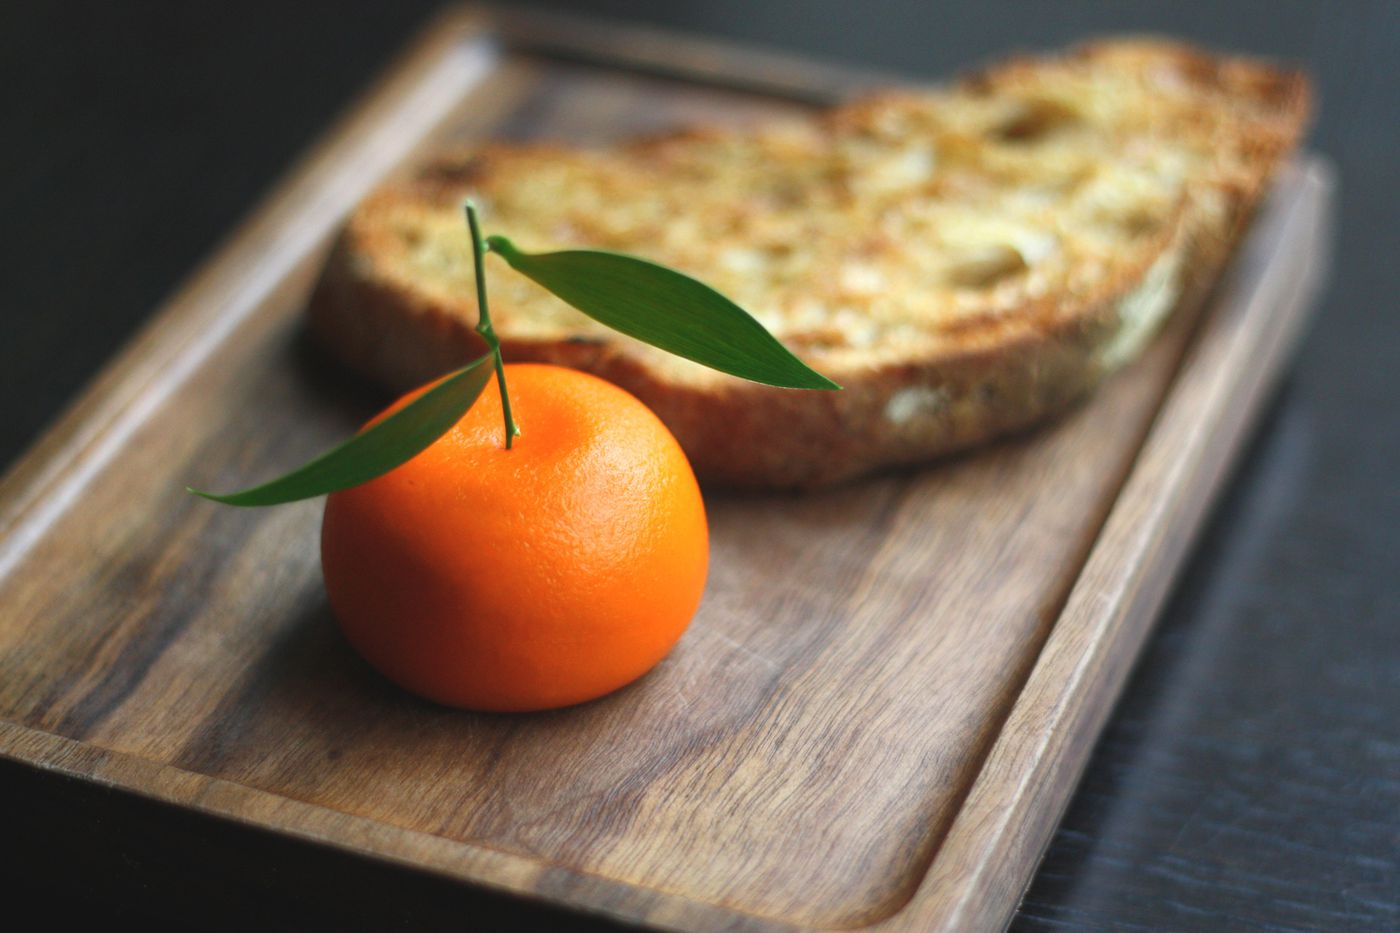 'Meat fruit' —a chicken liver parfait coated in mandarin jelly — at Dinner by Heston Blumenthal at the Mandarin Oriental Hotel in Knightsbridge